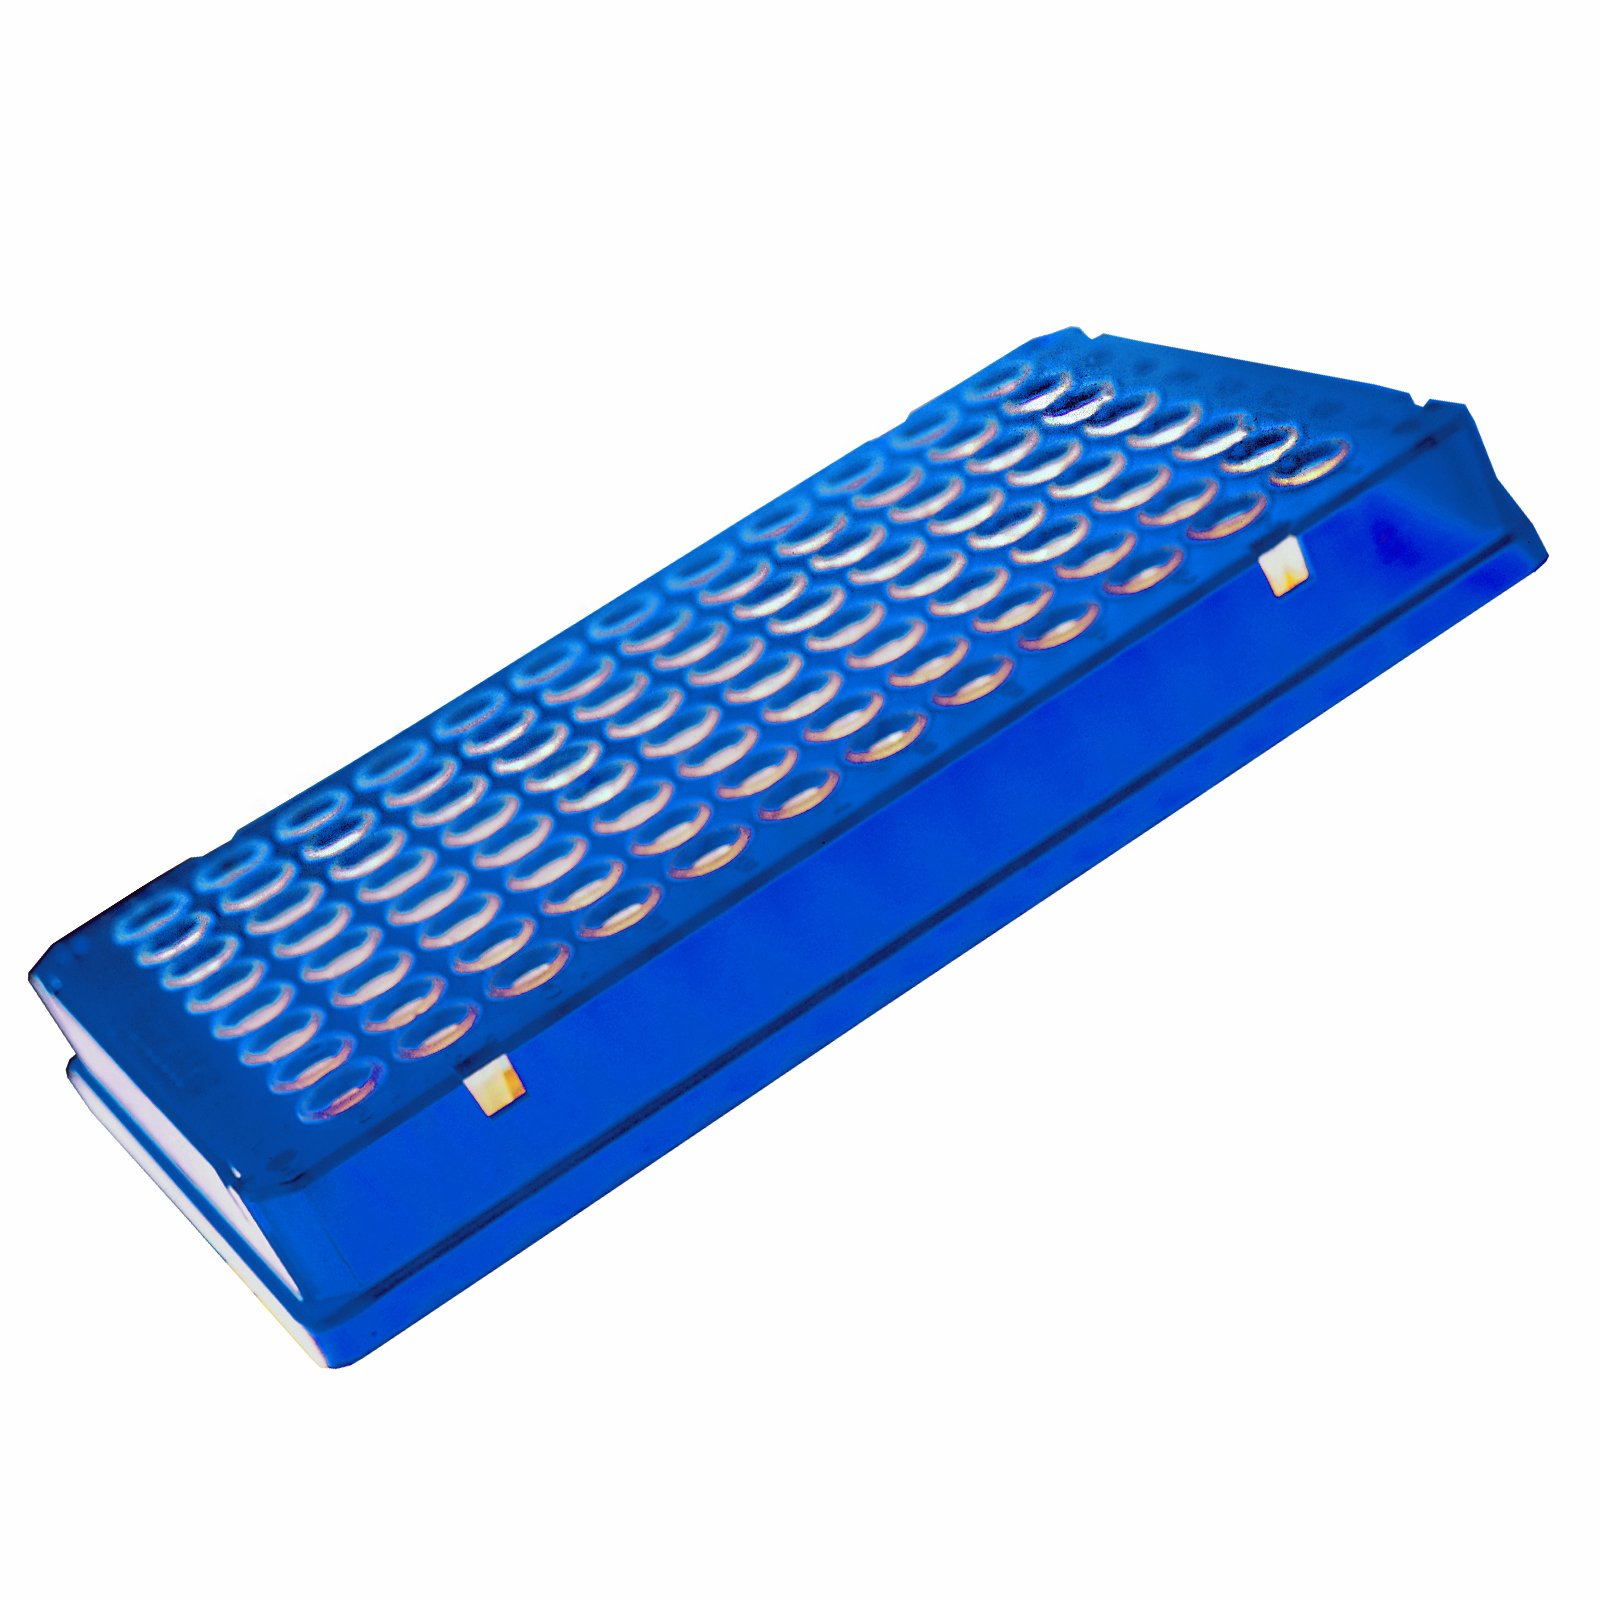 Eppendorf 951022003 Polypropylene Twin.tec Real Time PCR Plate with 96 Skirted Wells, Blue Border (Pack of 25)